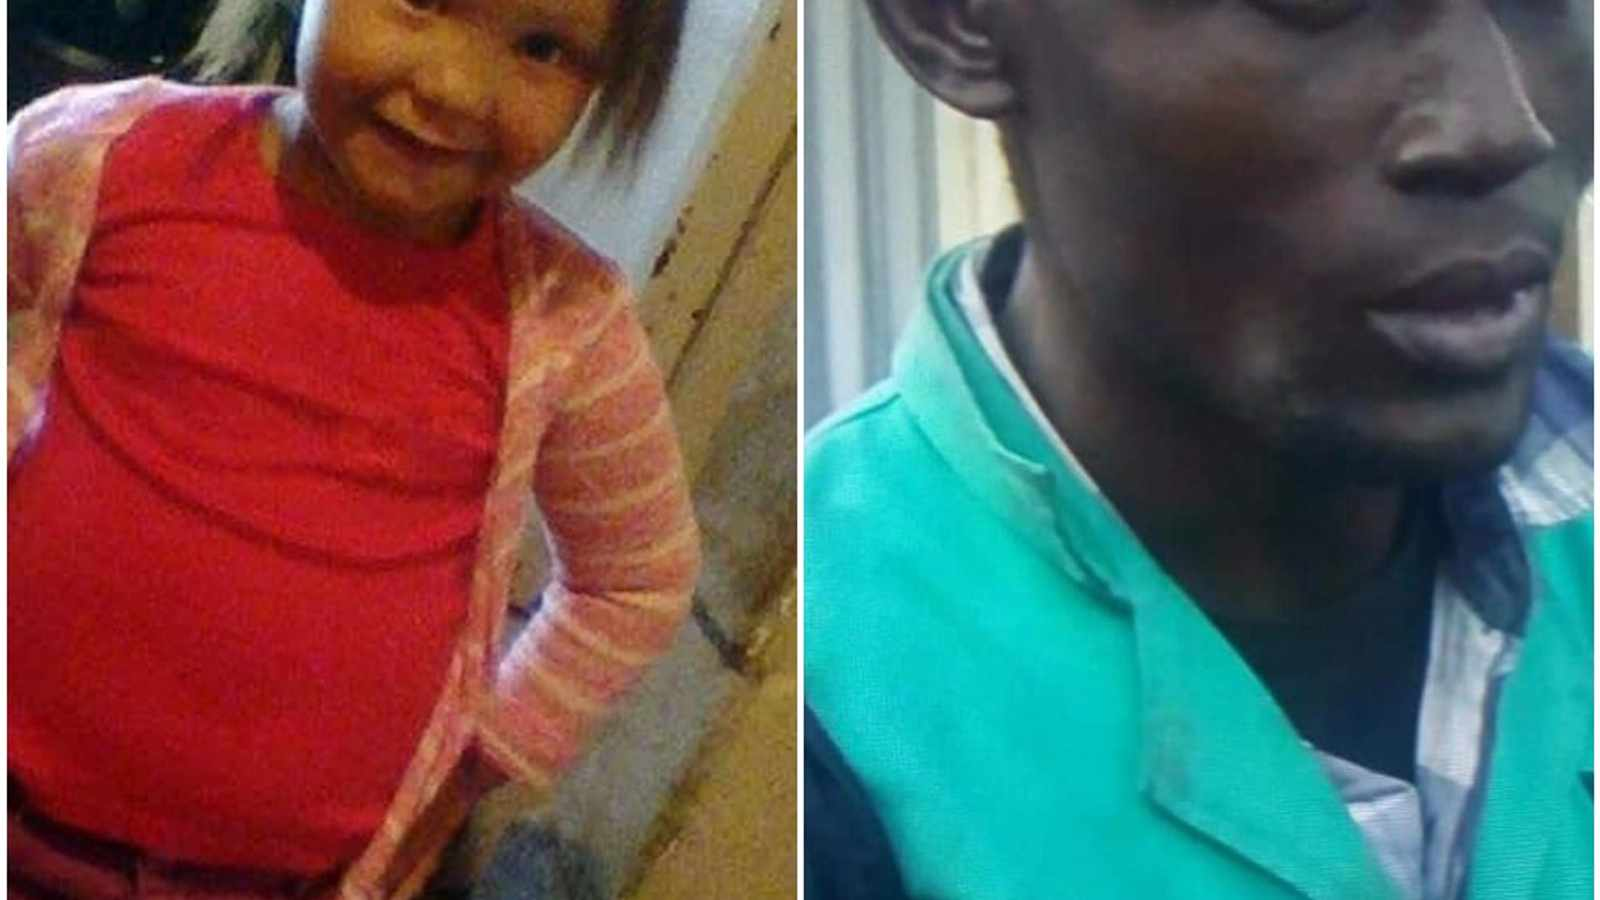 Bodies of missing canal man and girl found